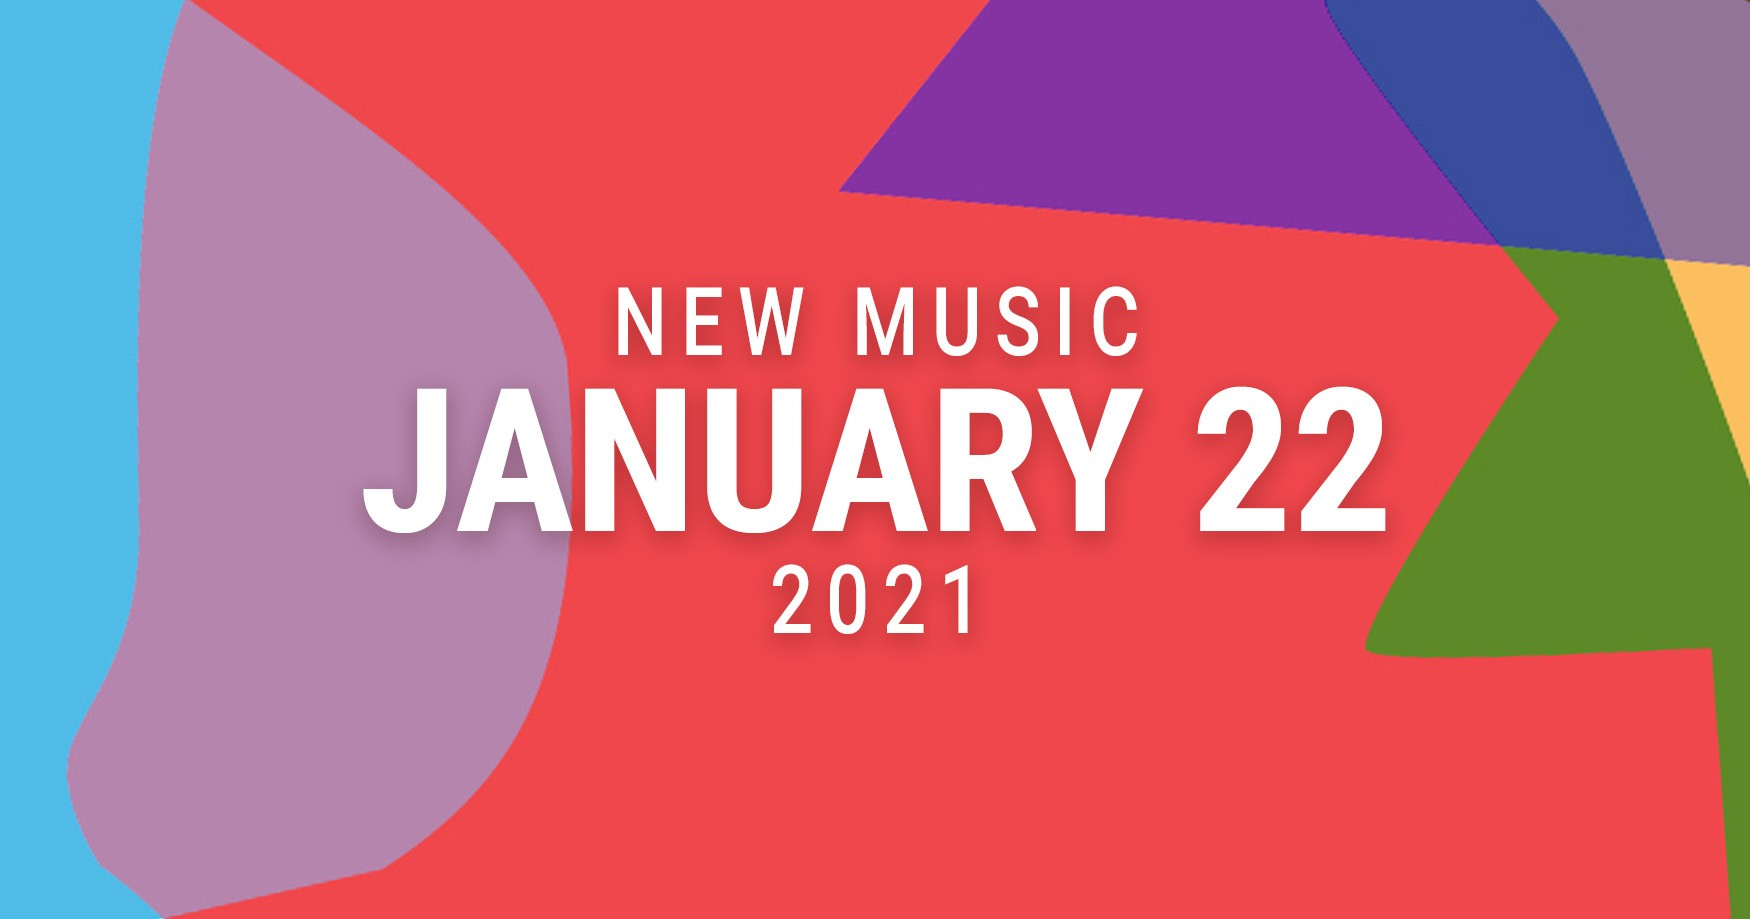 New Music January 22, 2021